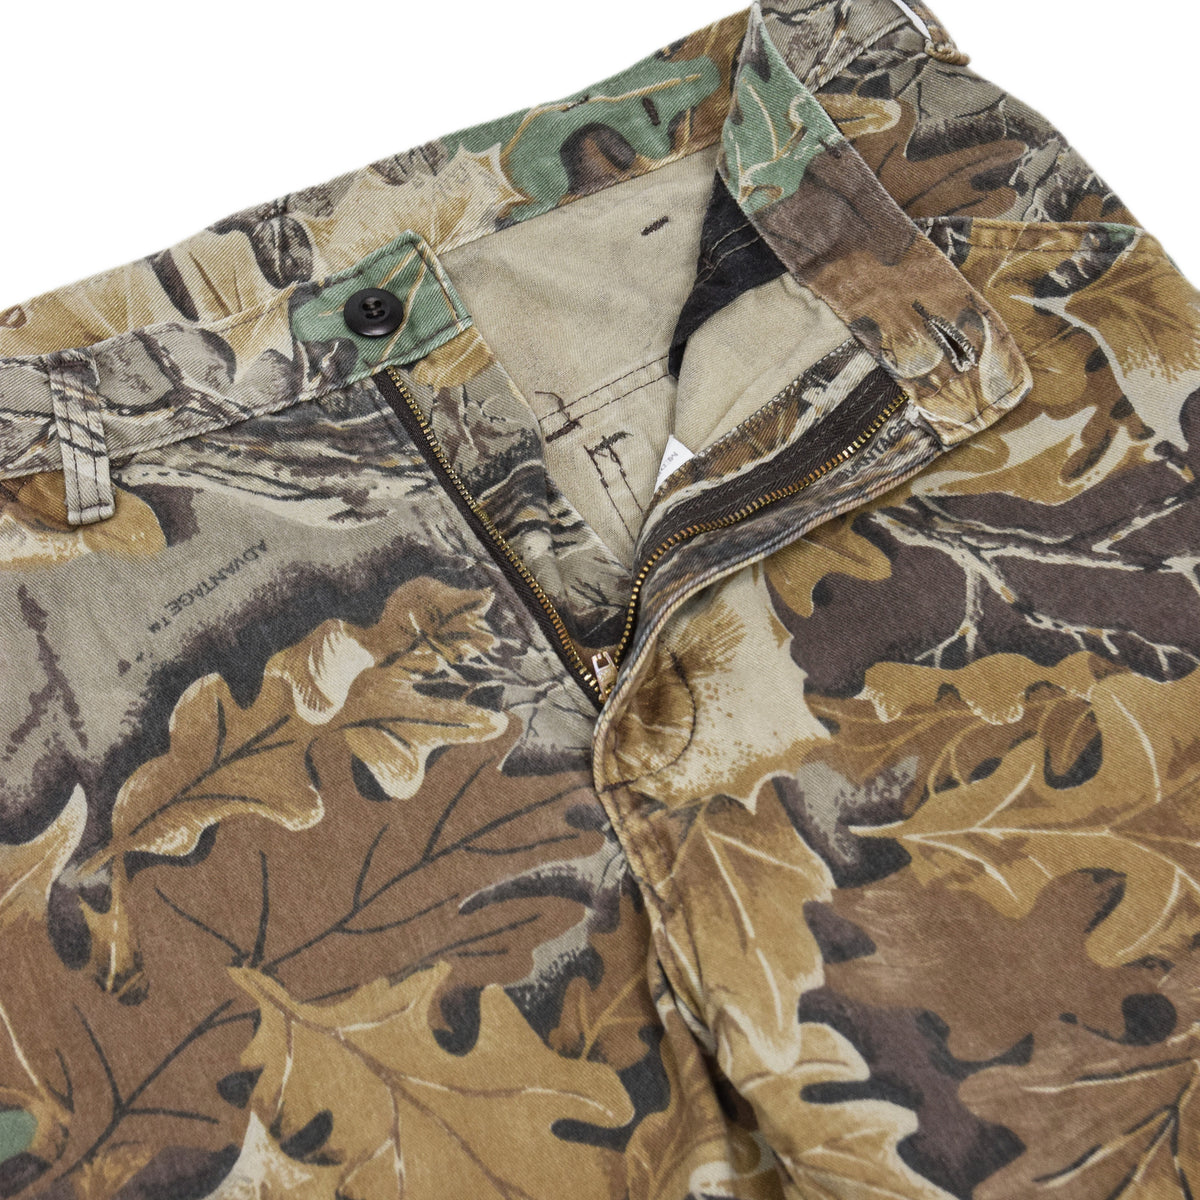 Vintage Walls USA Leaf Camo Hunting Cargo Pants Field Trousers Medium 30 - 32 W crotch